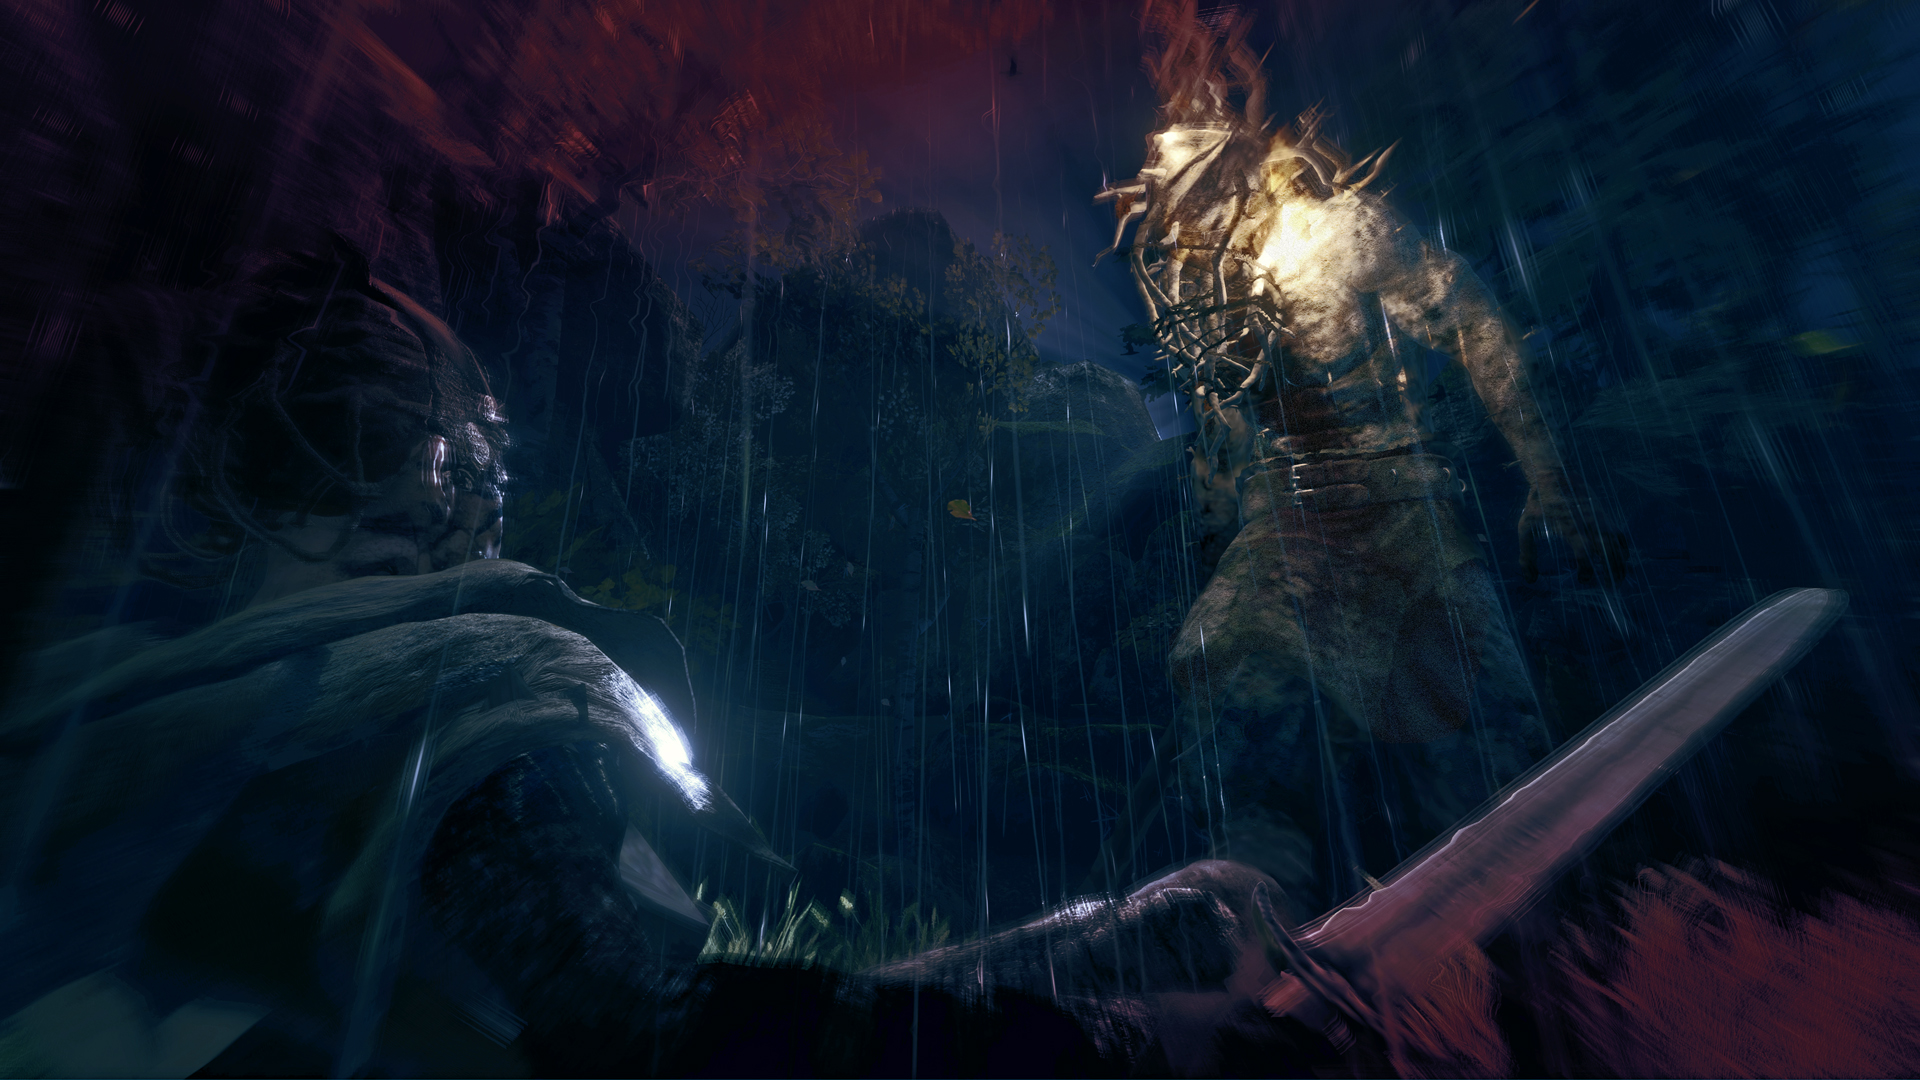 Mental Health And Psychosis To Be Explored In Hellblade